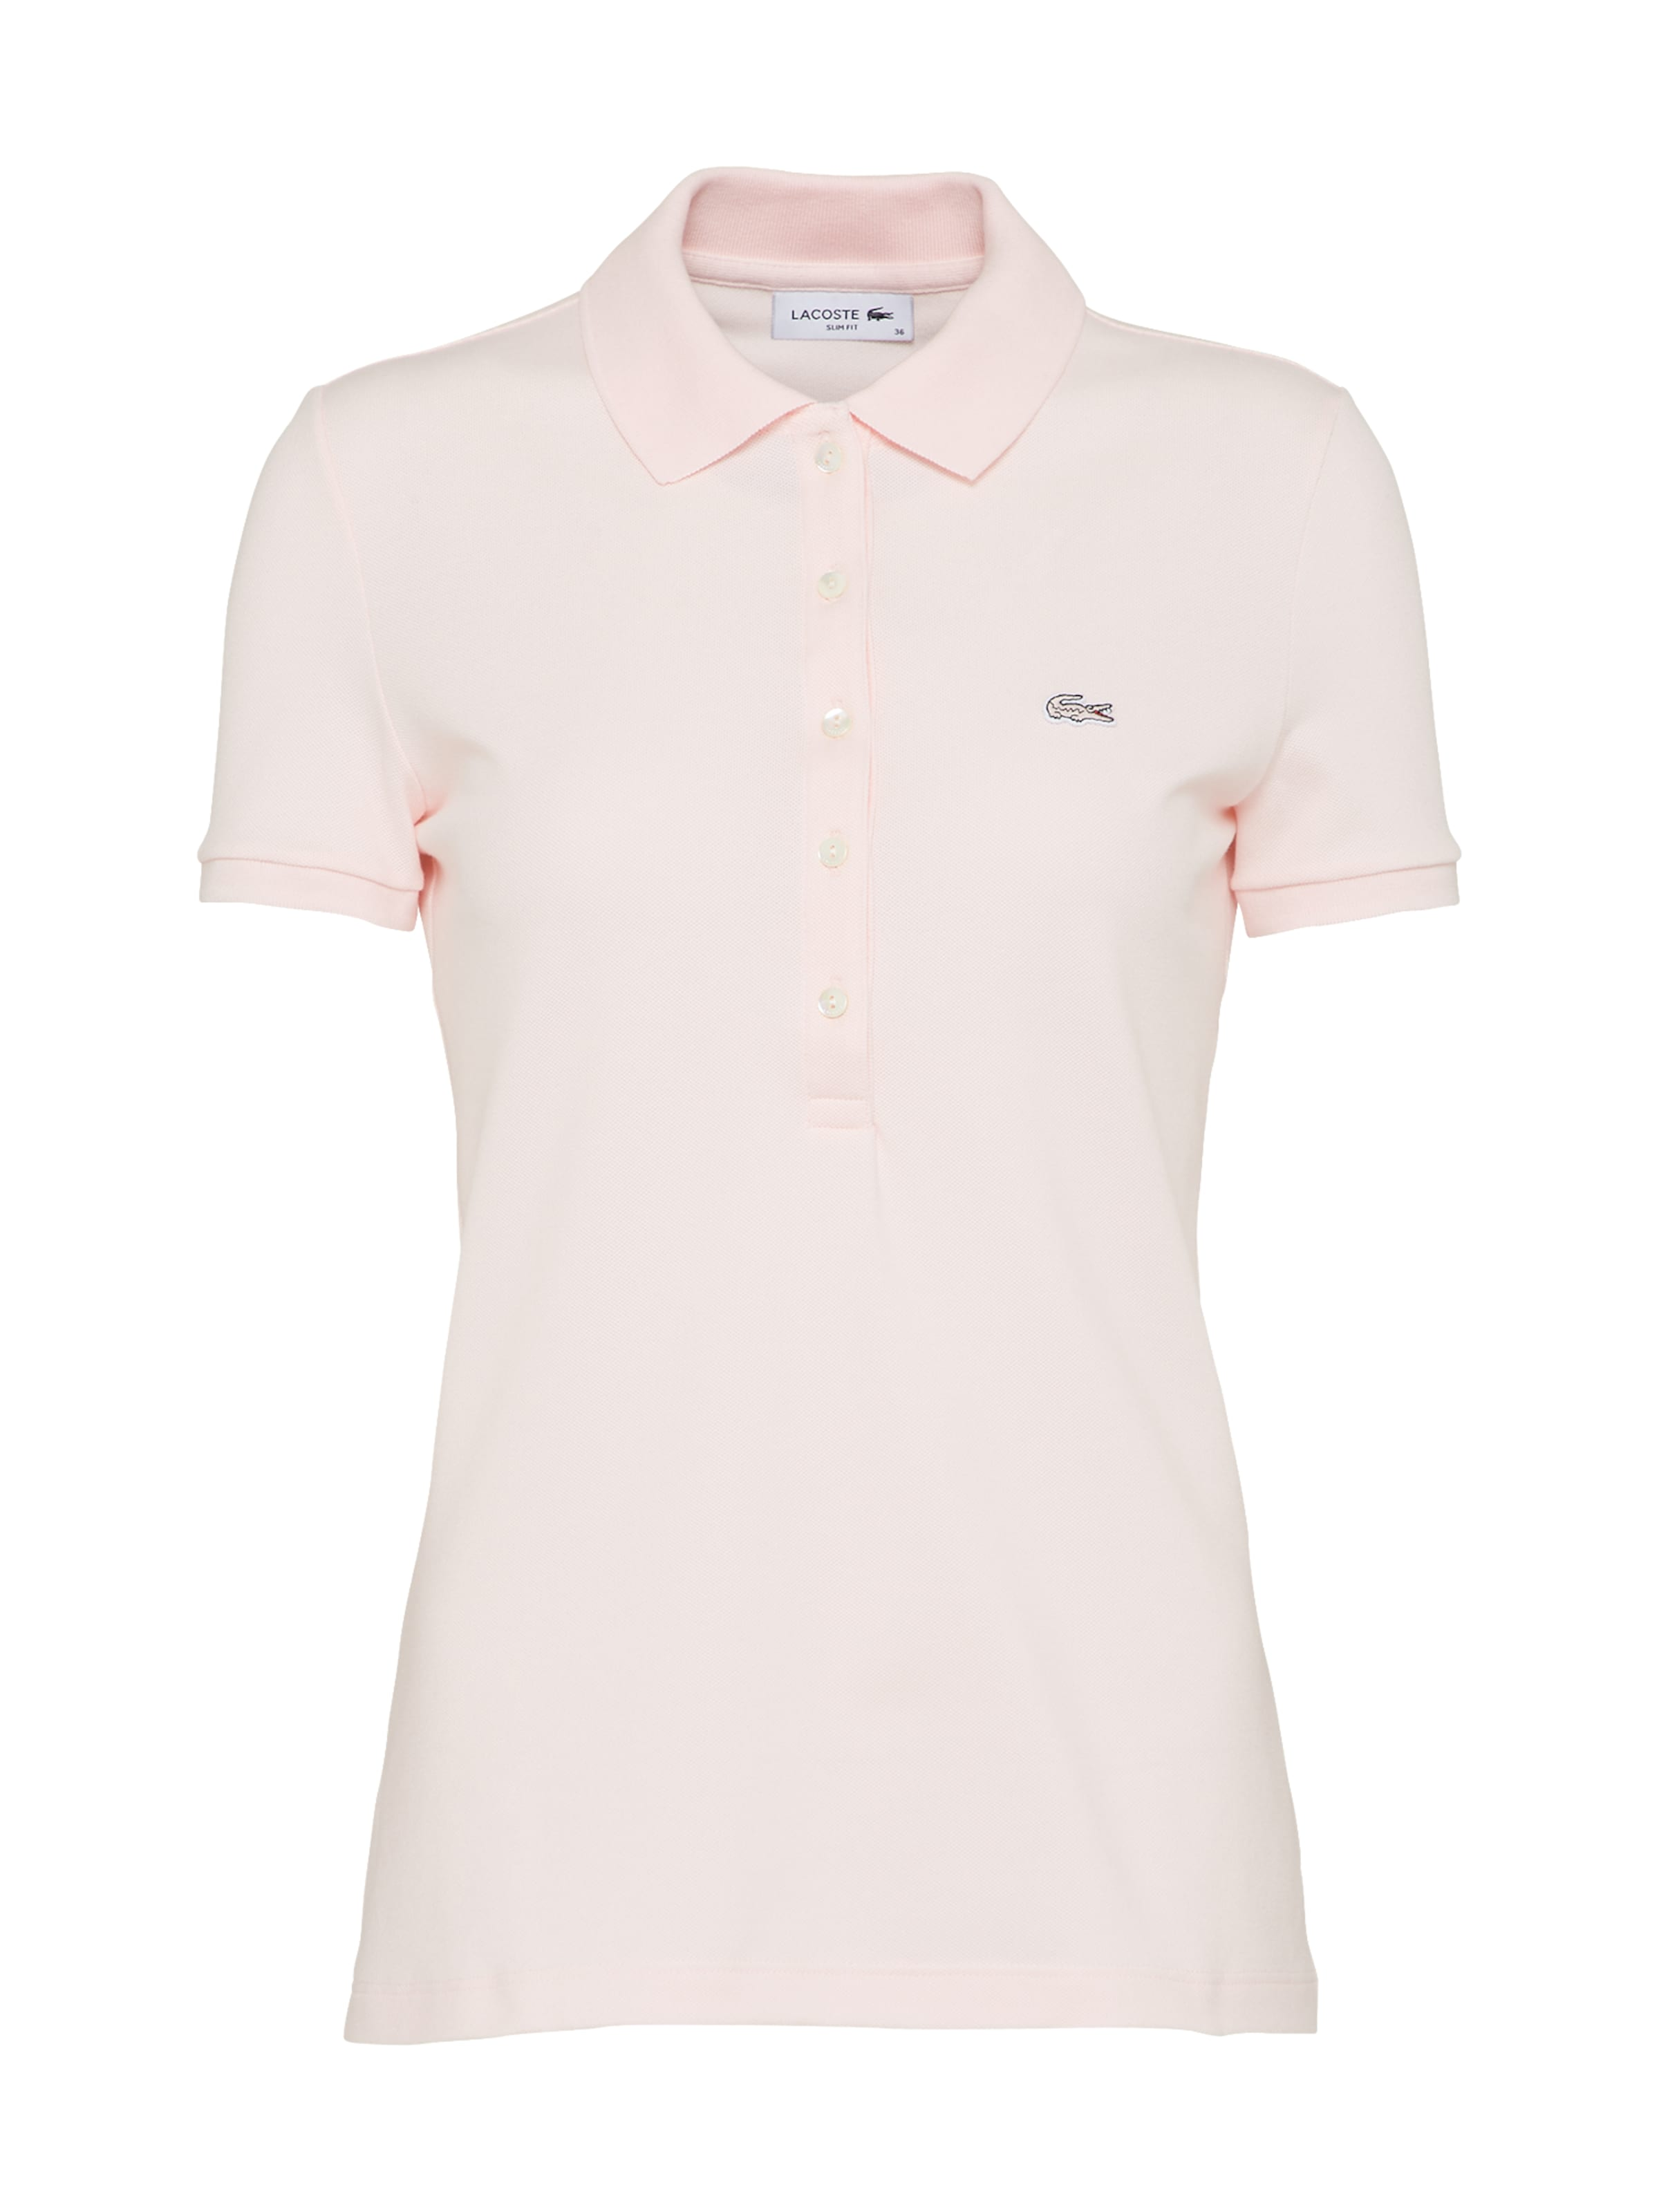 Lacoste Shirt' In Rosa Shirt' In 'polo Rosa 'polo Lacoste 'polo Lacoste WY9E2HDI